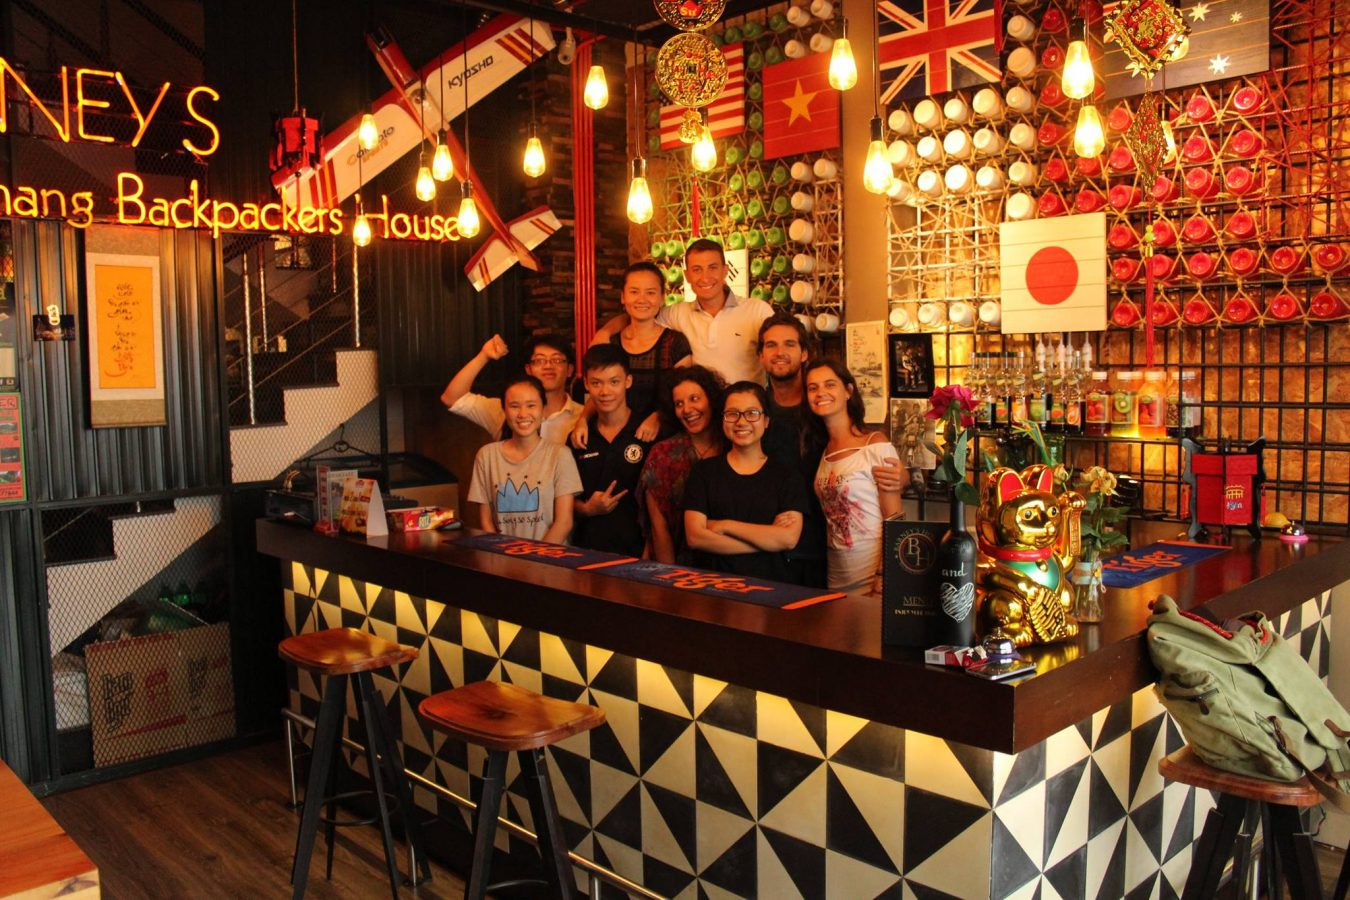 Bar area and staff